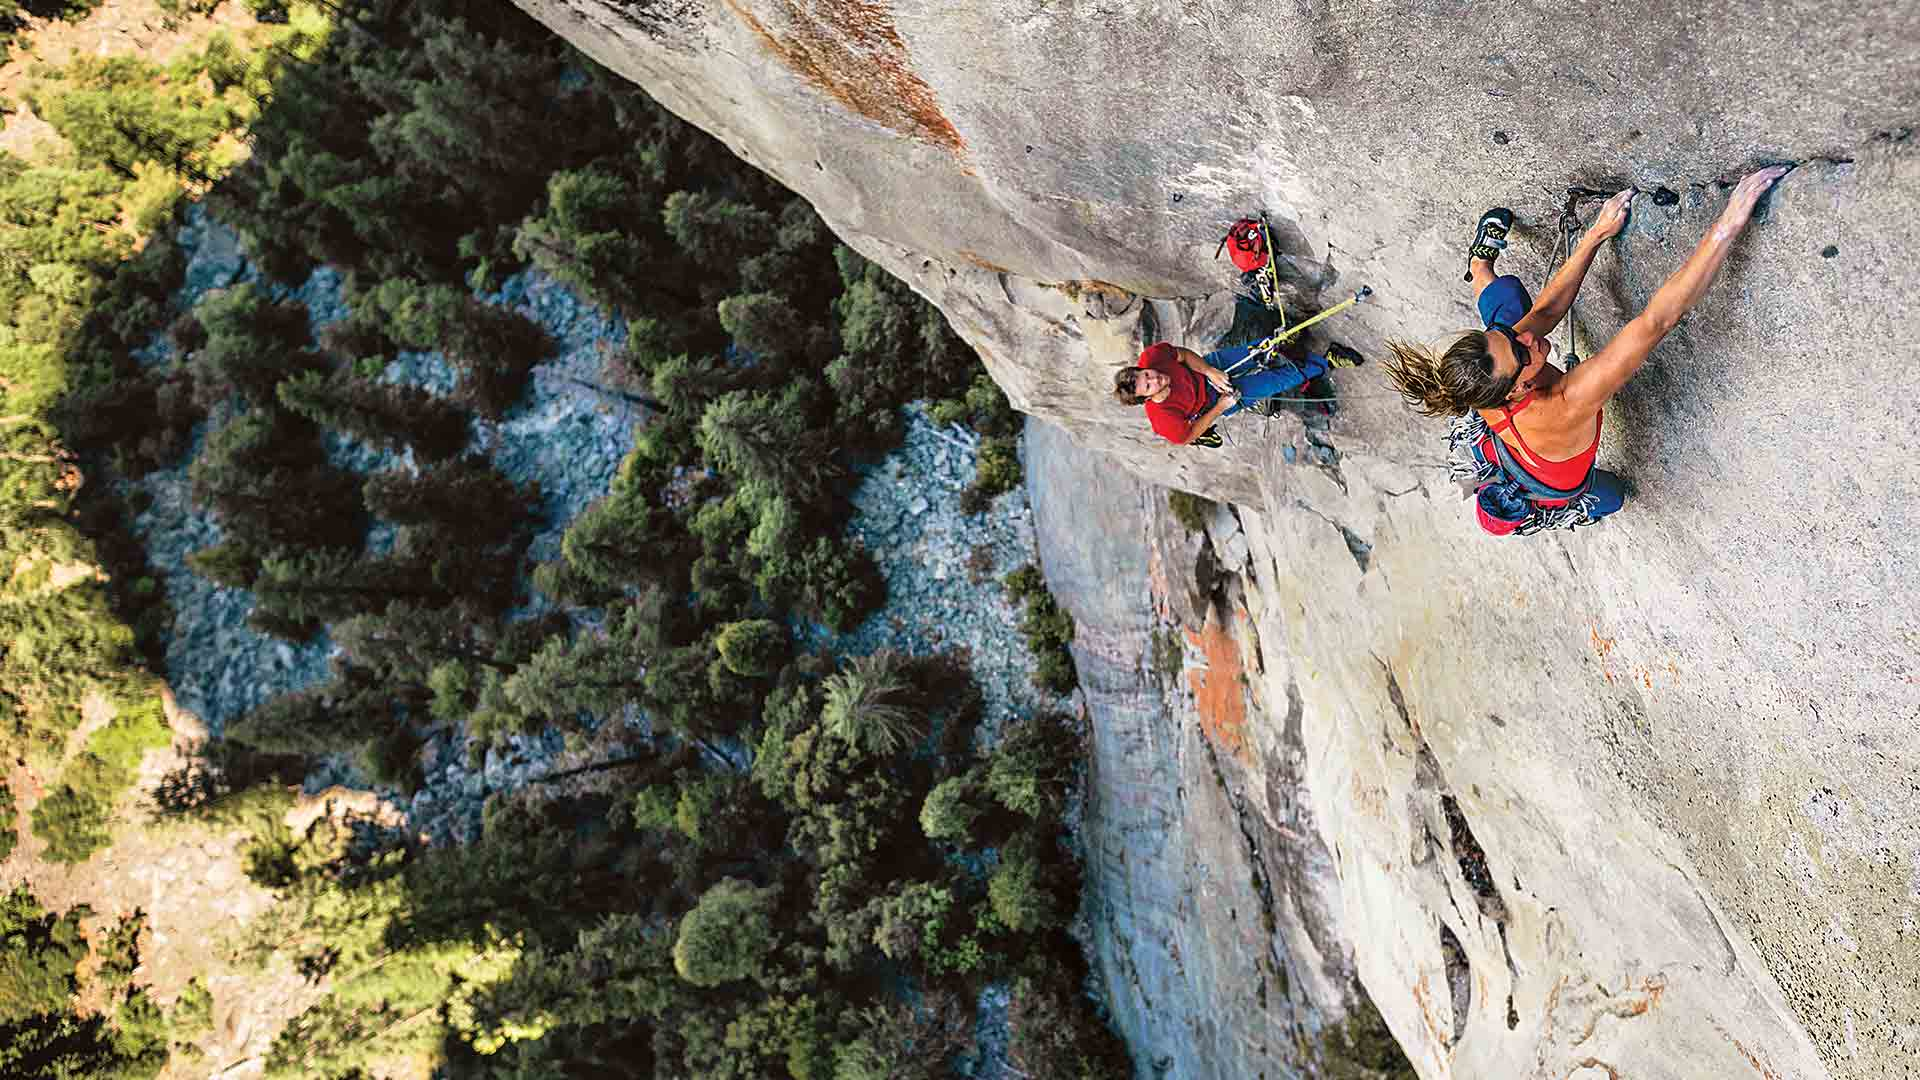 Steep learning curve. A winter of bouldering and overhanging sport climbing gives Kate Rutherford the power to free the steep and relentless Leaning Tower's West Face. Yosemite Valley National Park, California. KEN ETZEL